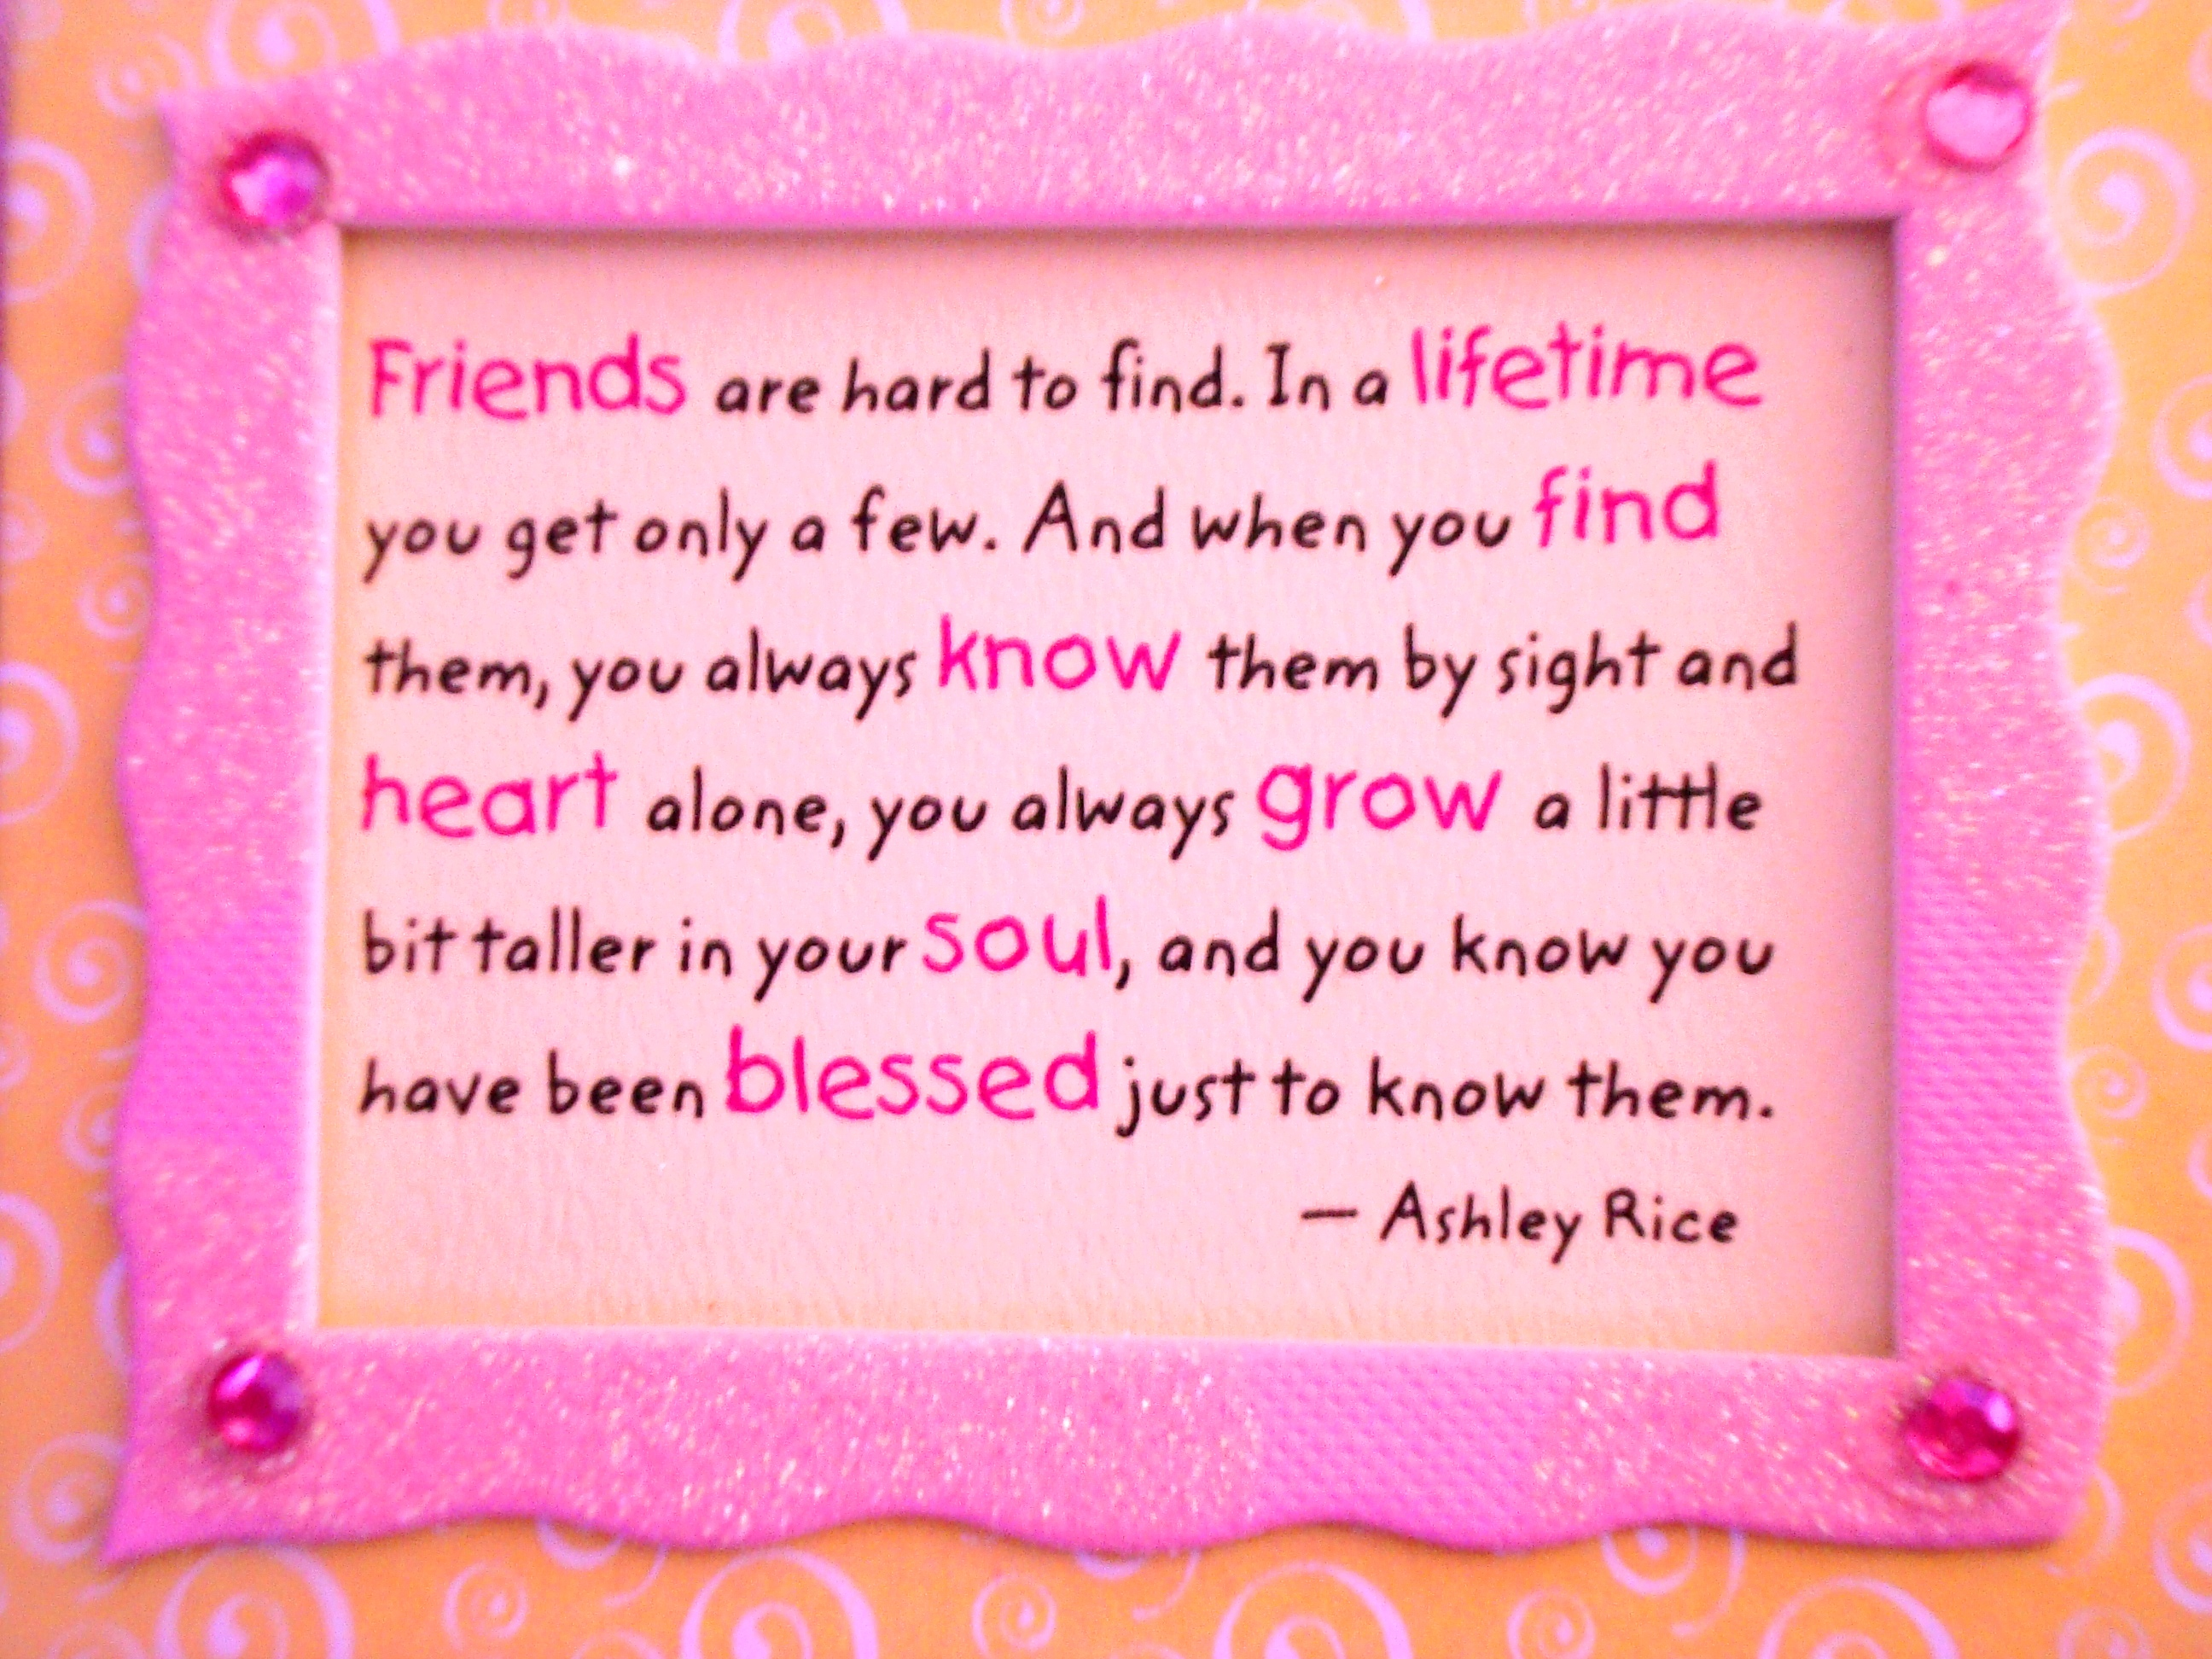 Friends Are Hard To Find. Christian Friendship Quotes